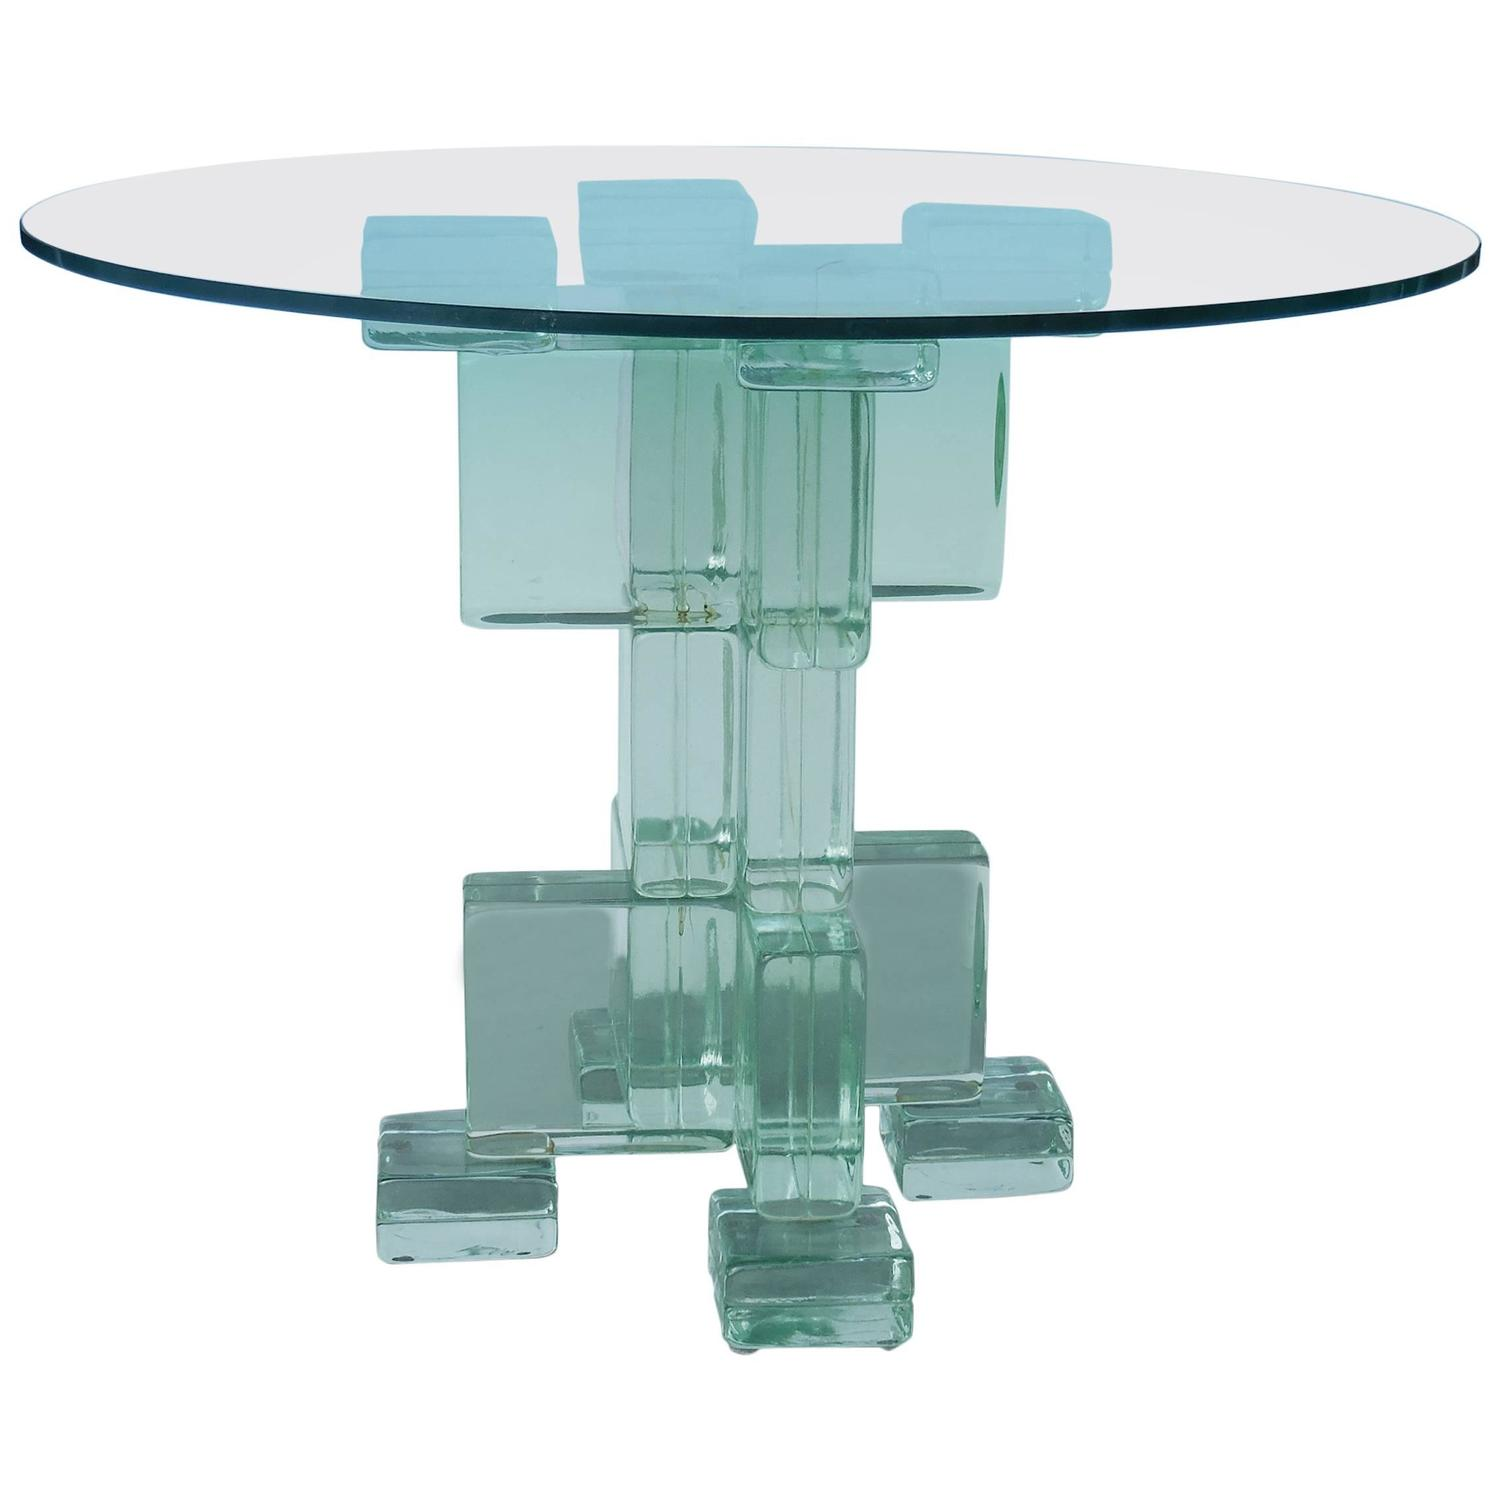 Glass Block Dining Table by Imperial Imagineering at 1stdibs